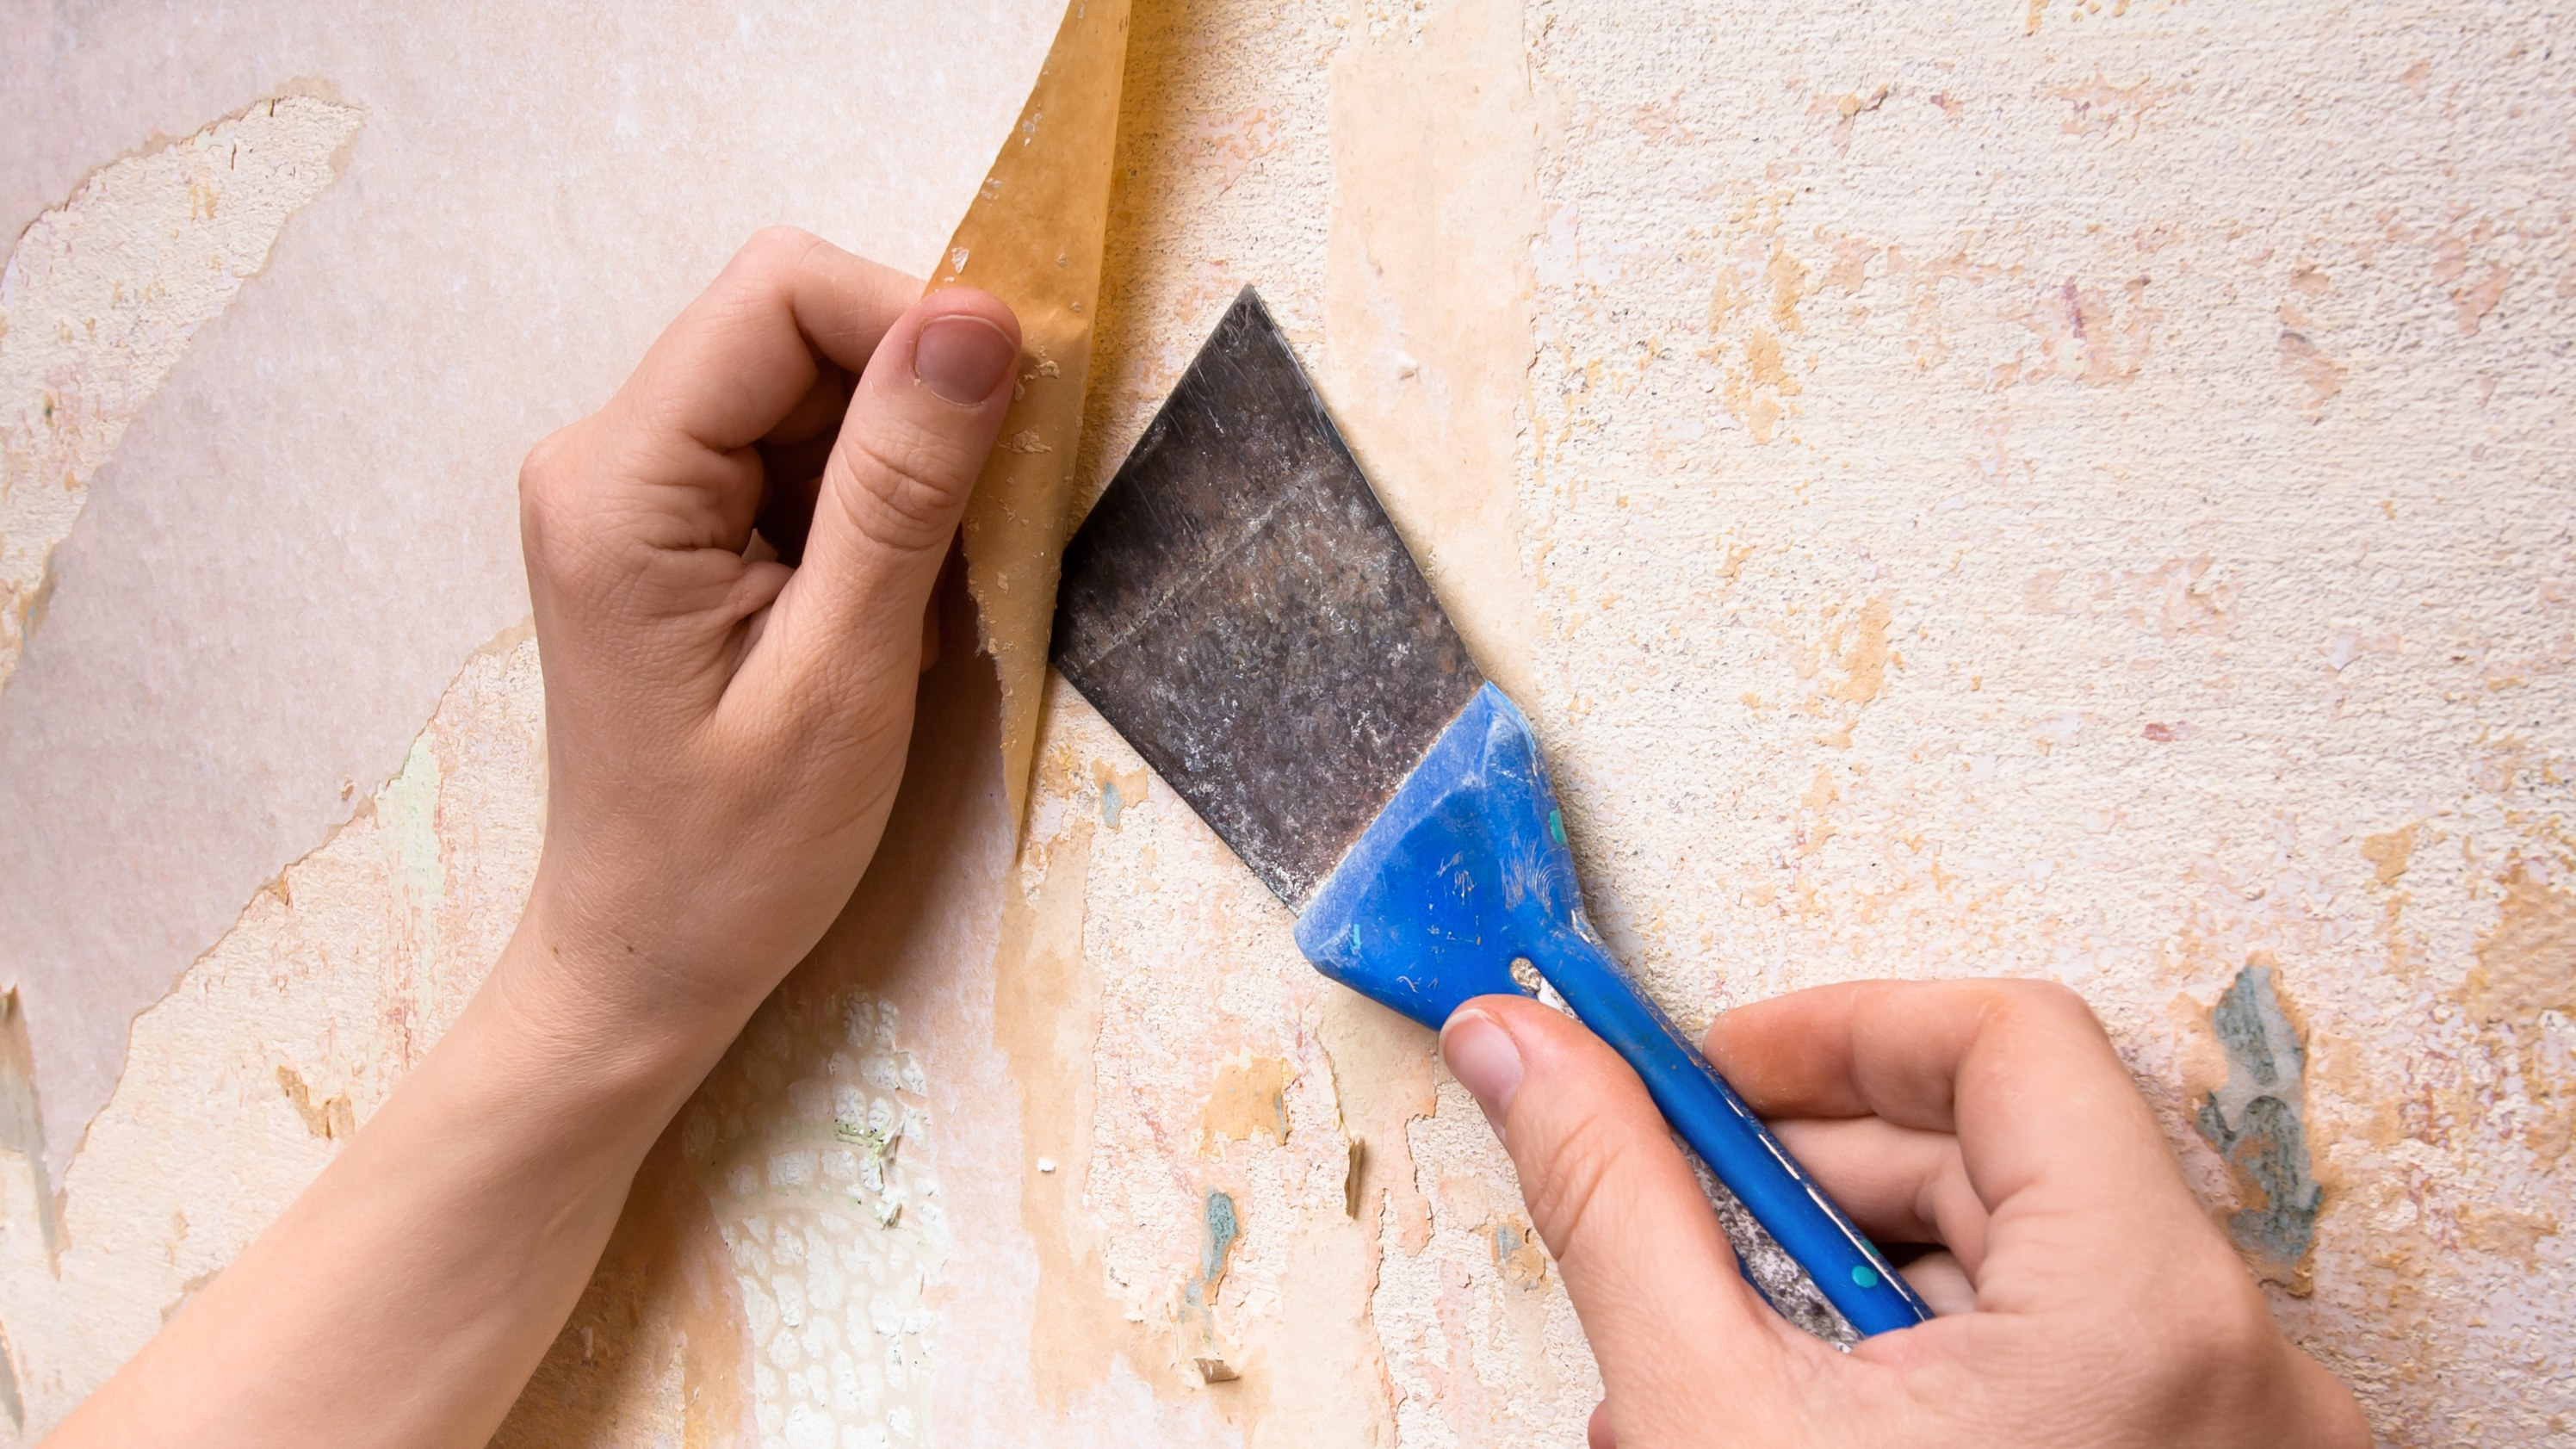 How To Remove Wallpaper Glue in 5 Simple Steps Architectural Digest 2992x1683